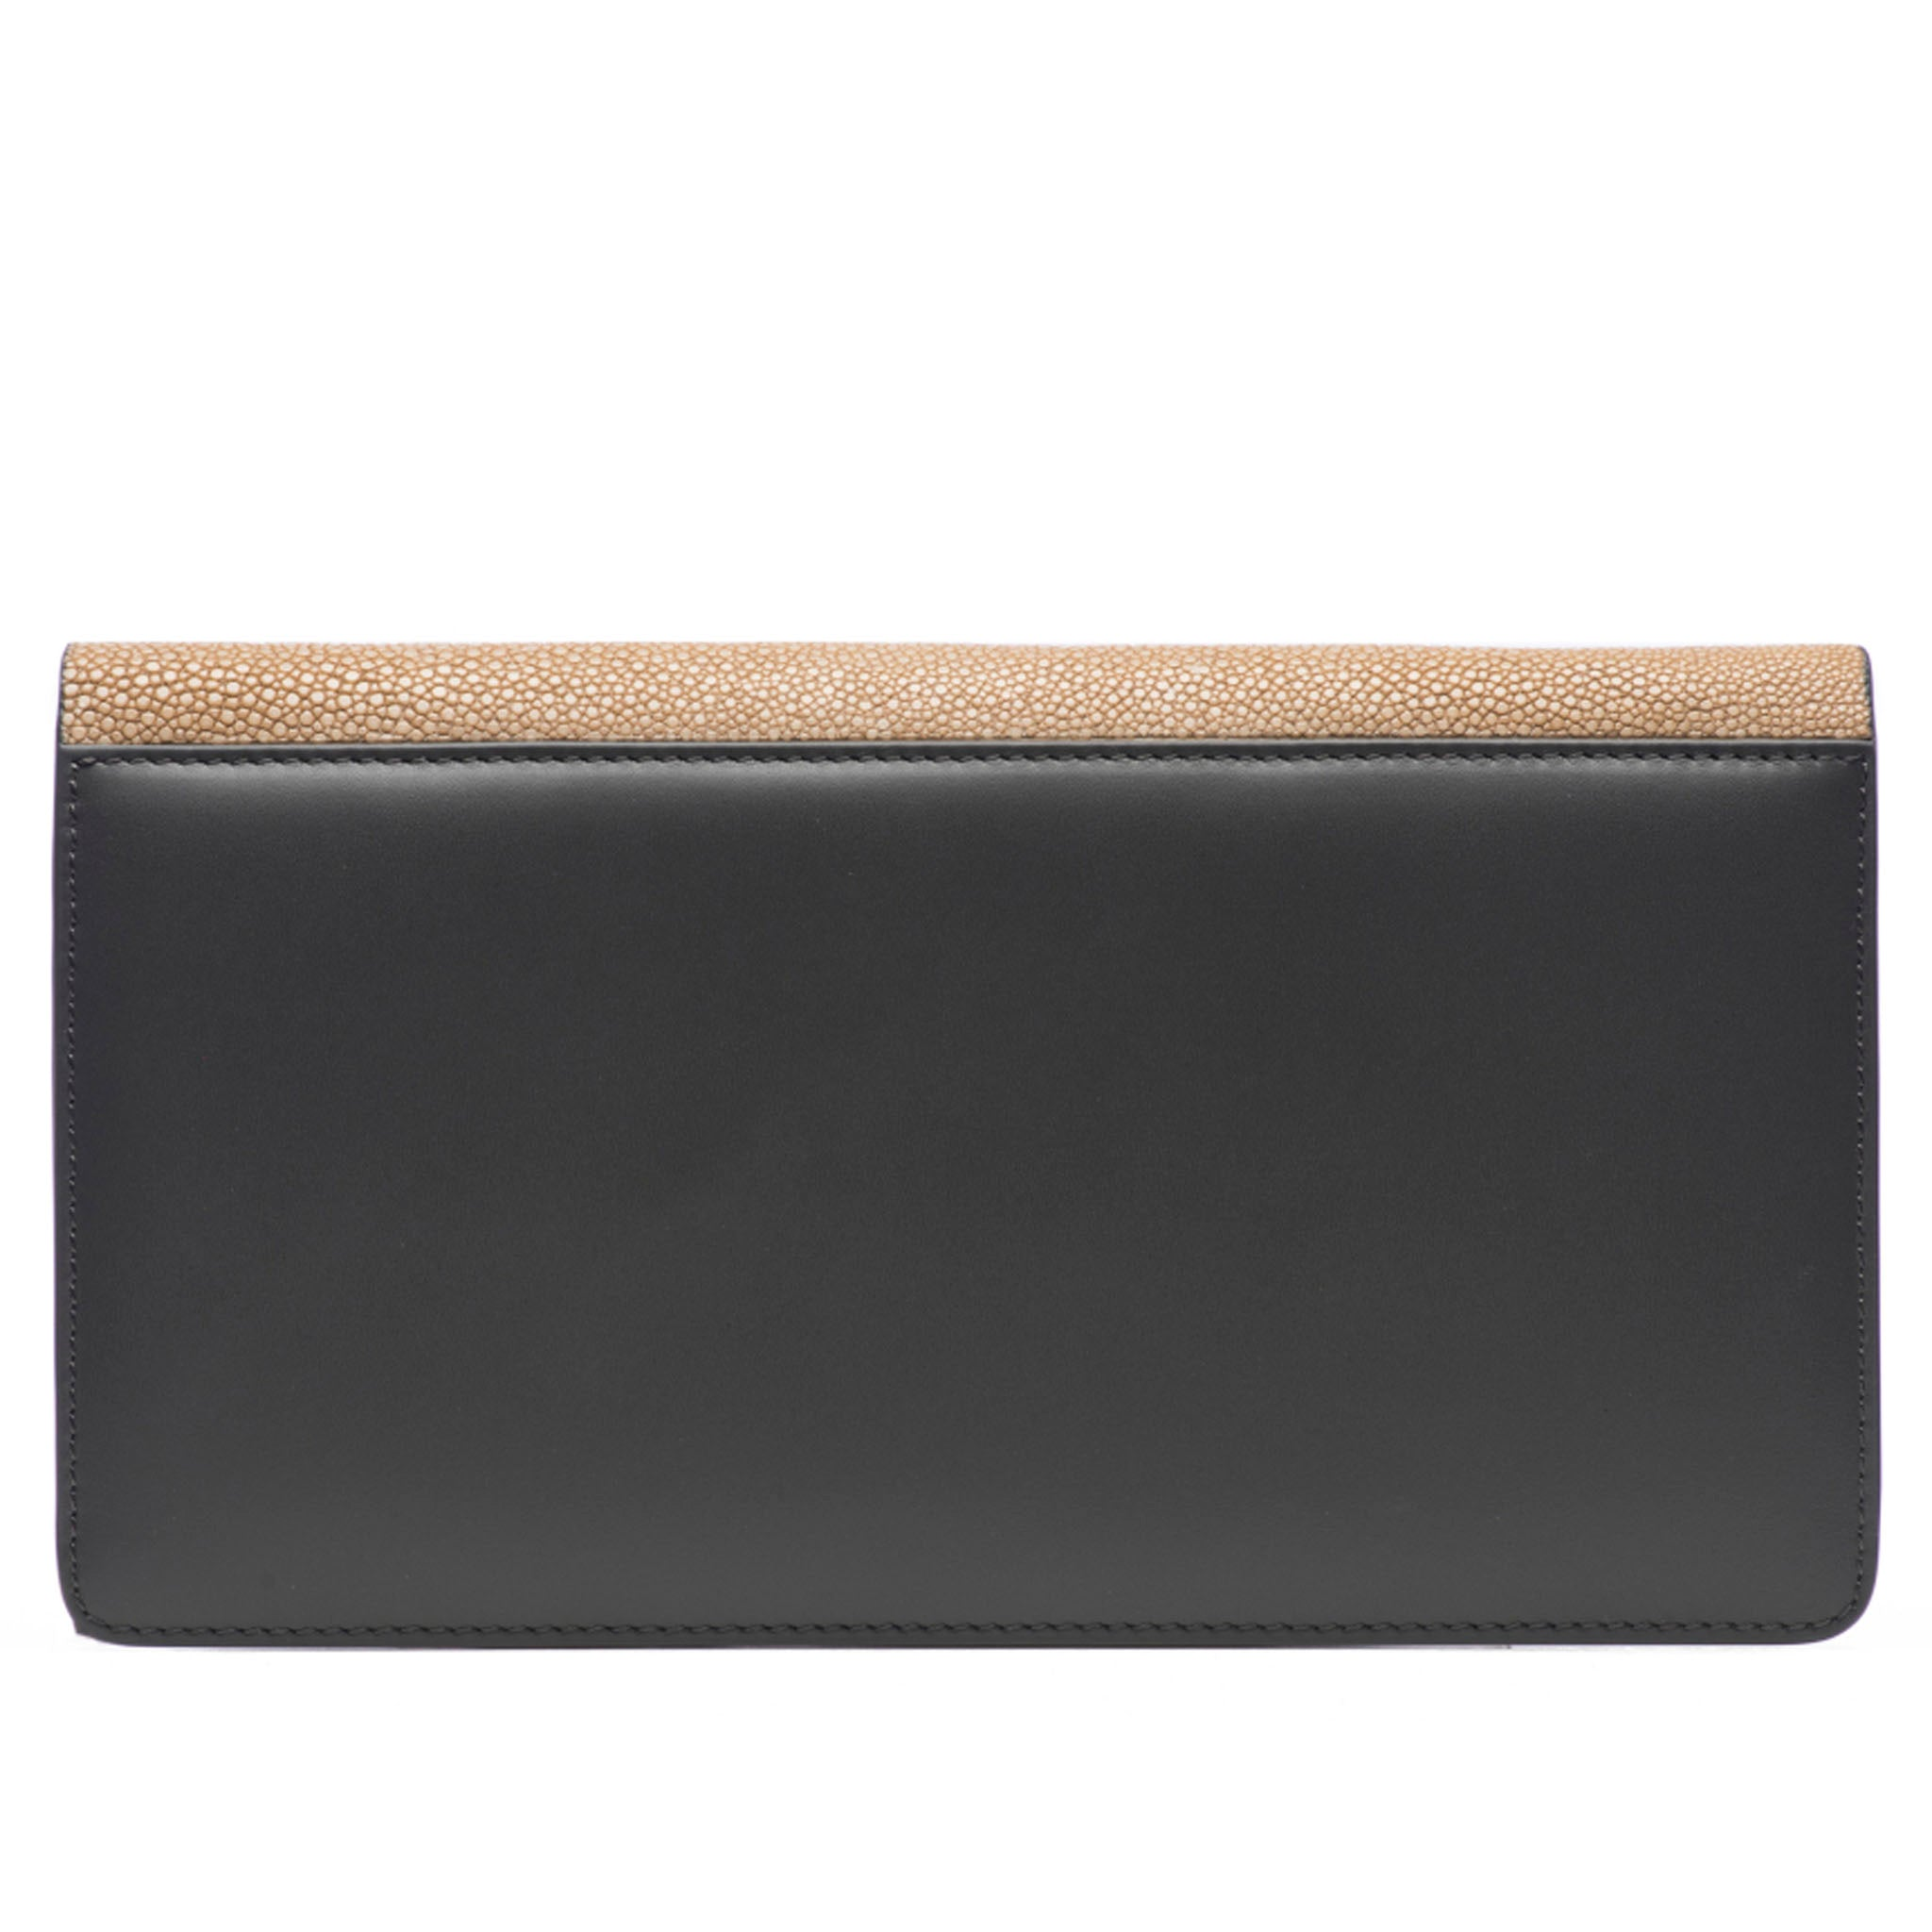 Putty Shagreen Fold Front Wallet Clutch  Back View Bea II -Vivo Direct